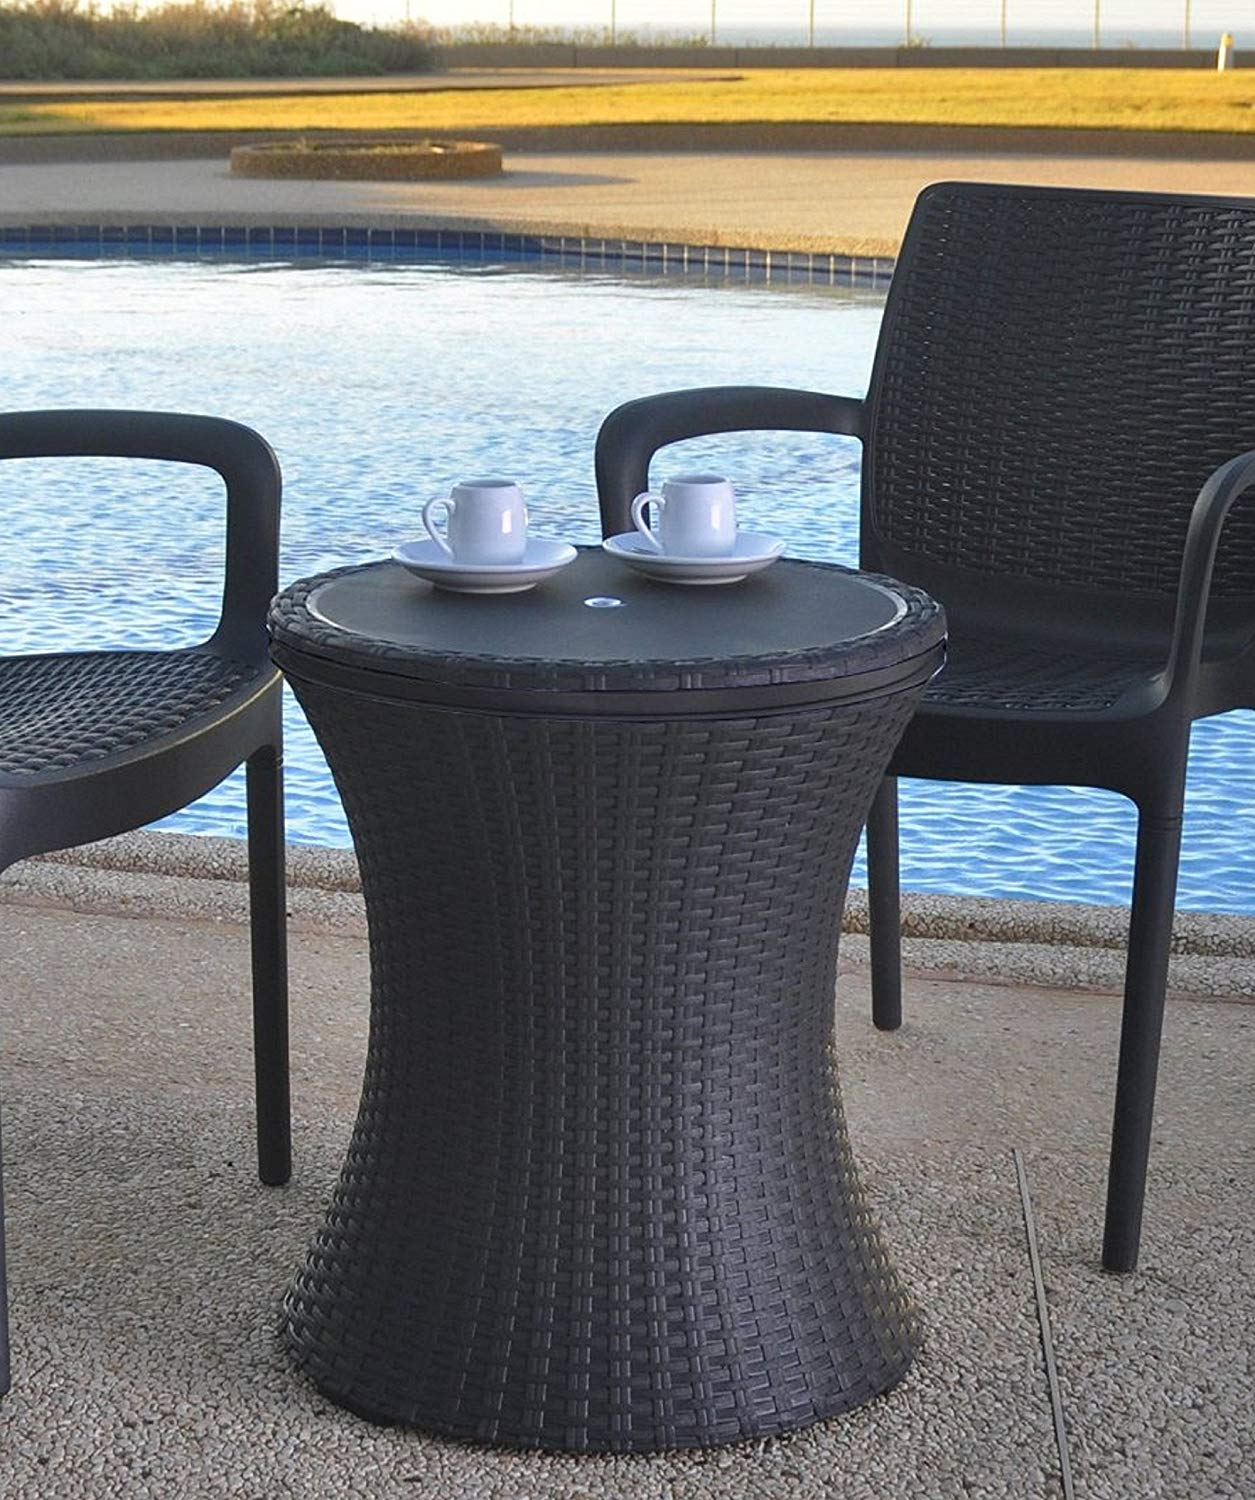 keter gal cool bar rattan style outdoor patio pool cooler table brown side with wicker garden piece nesting set pier tables tall lamps circular cotton tablecloths dale tiffany